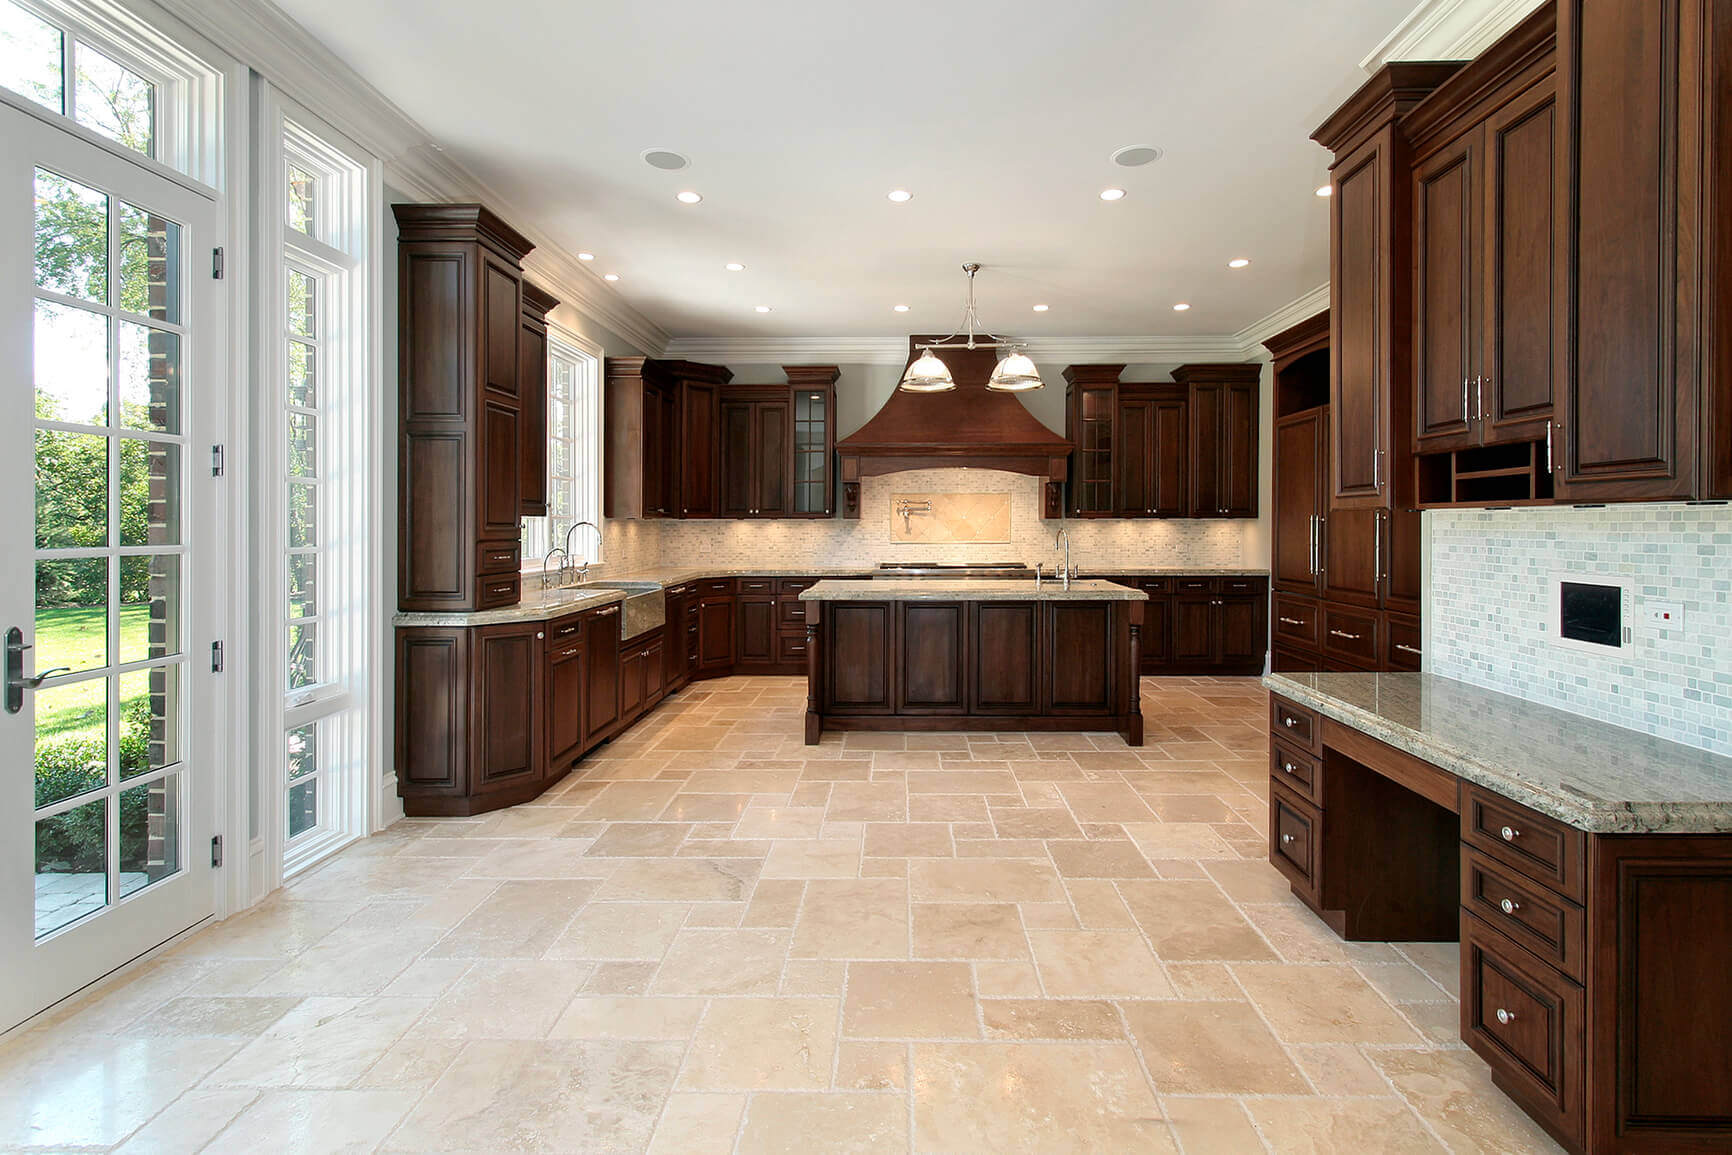 Contemporary kitchen floor tile ideas are now the homeowners' way of giving a real sense of stature and grandeur to any kitchen space. The clean lines of contemporary furnishings of the simple solid block of color in this kitchen enhance the general feel of the entire setup